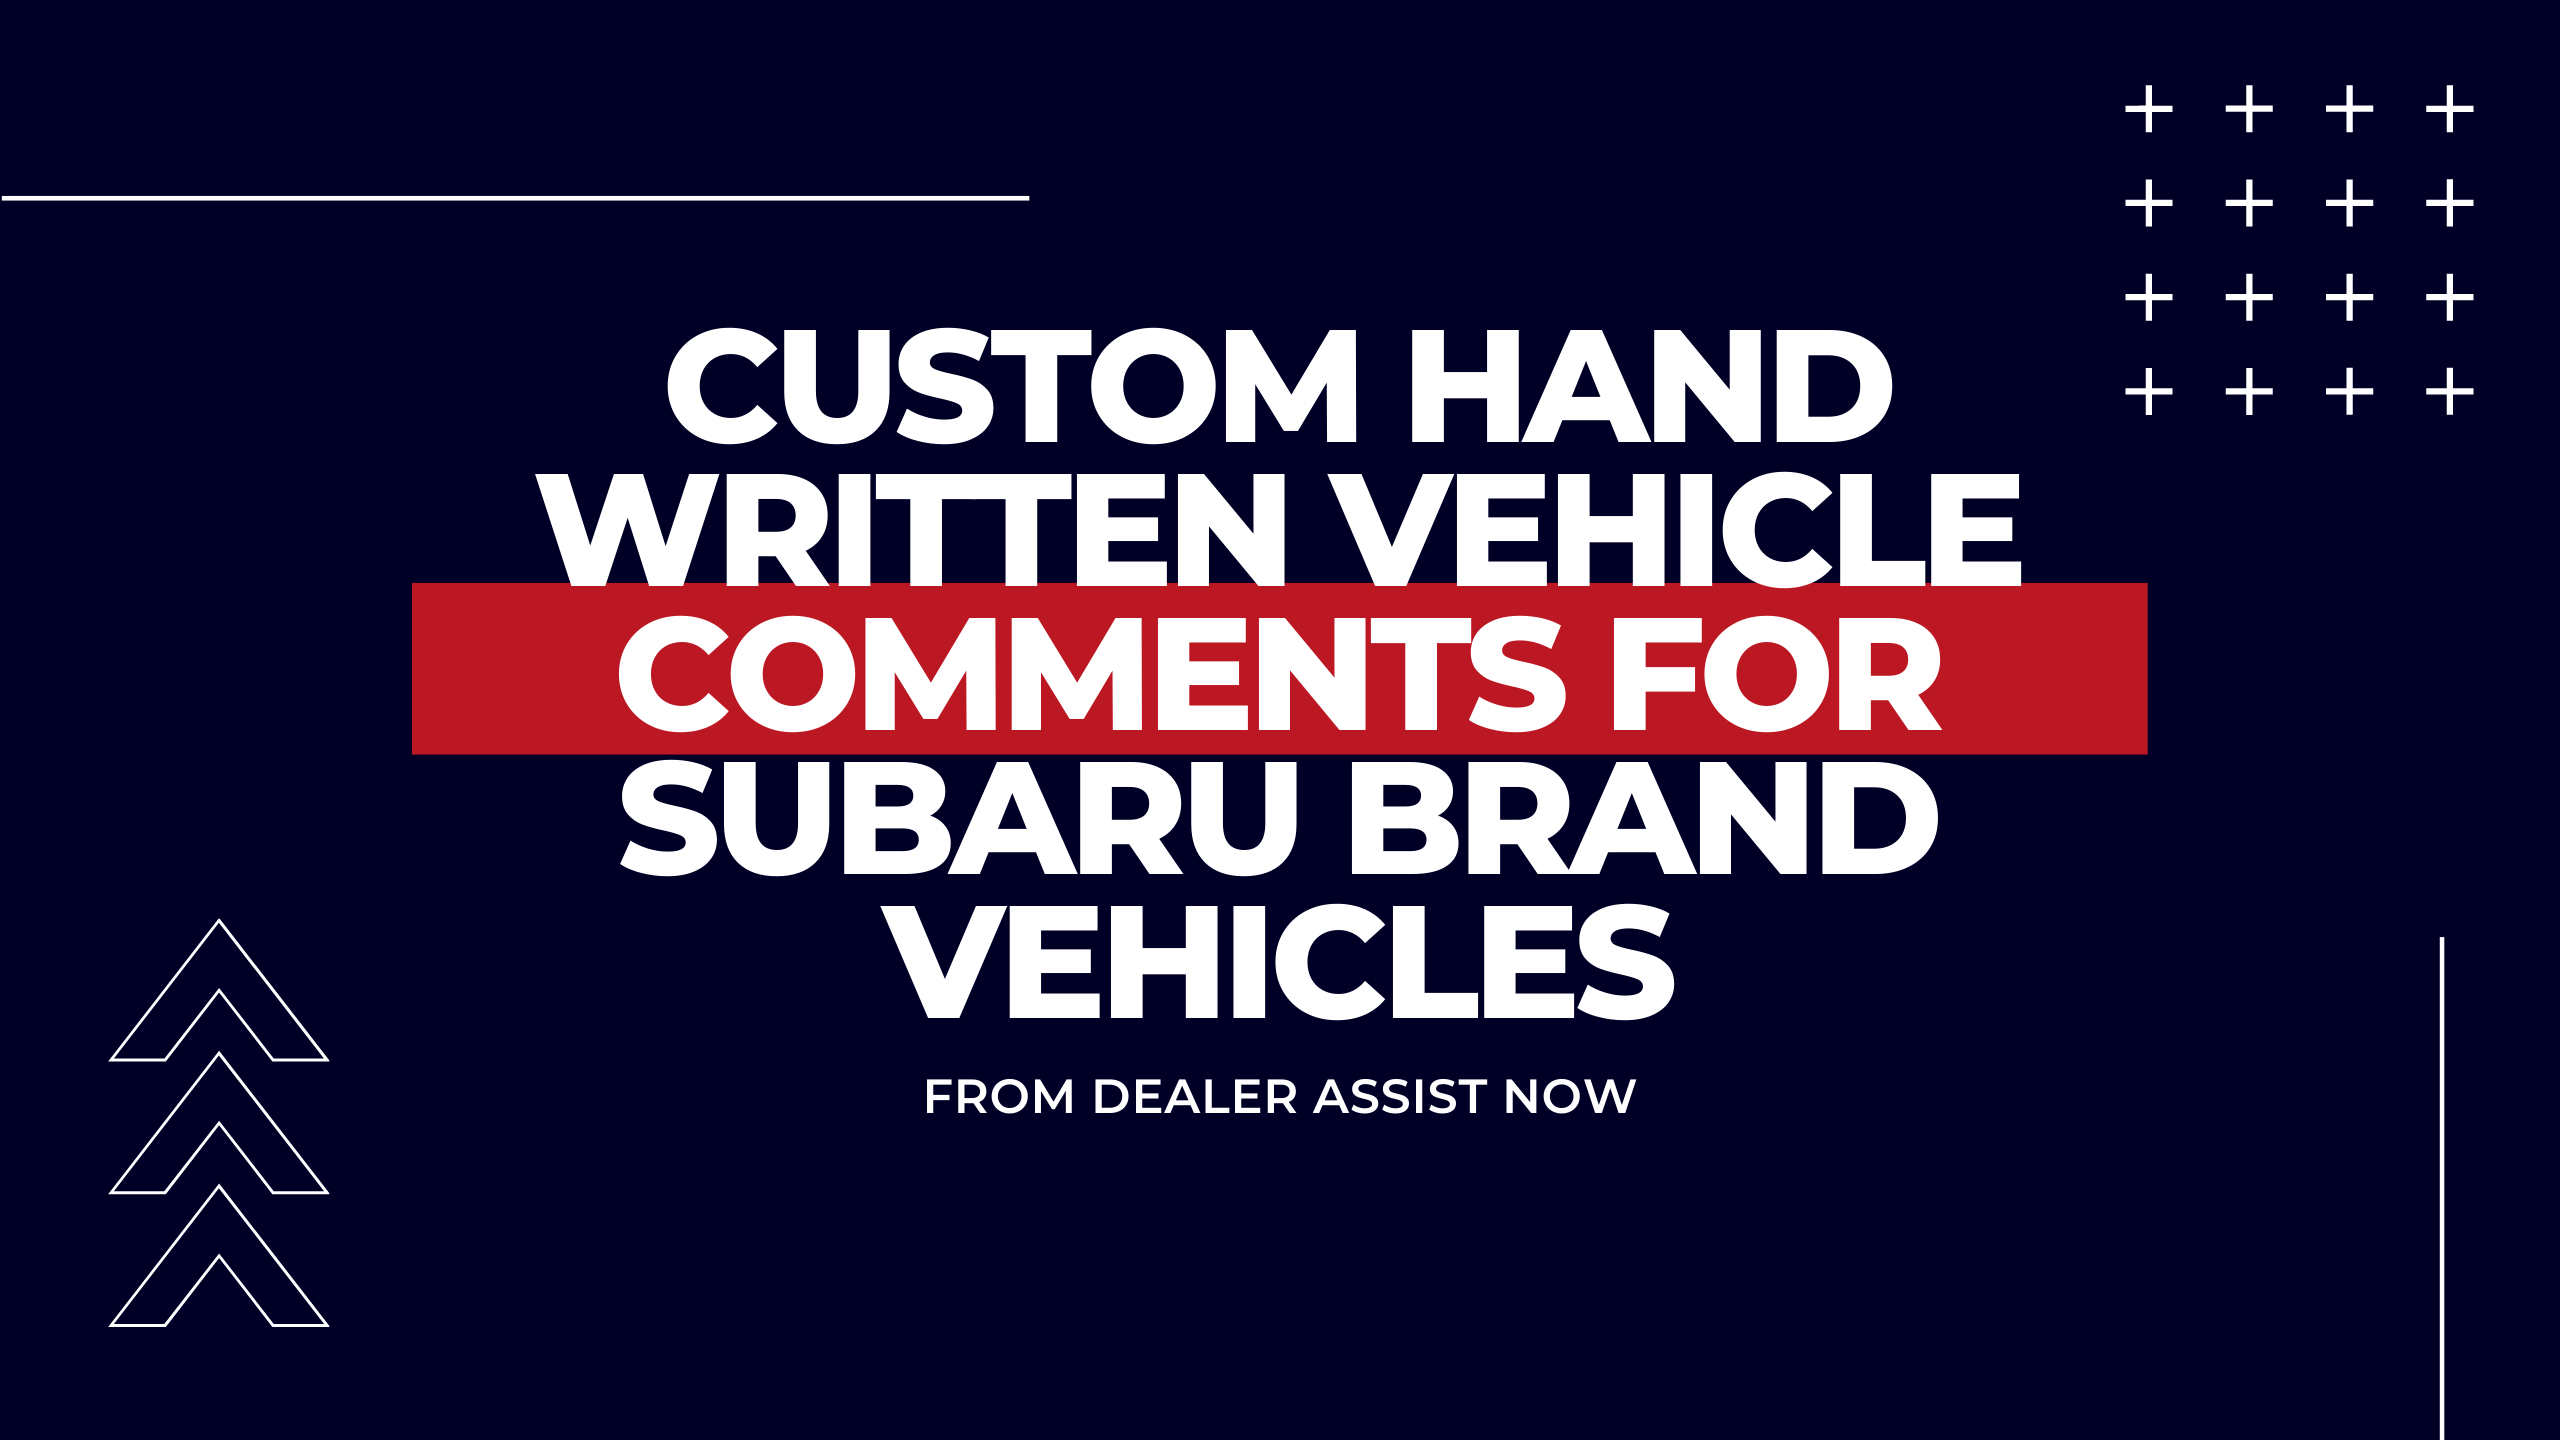 Custom Hand Written Vehicle Comments for Subaru Brand Vehicles